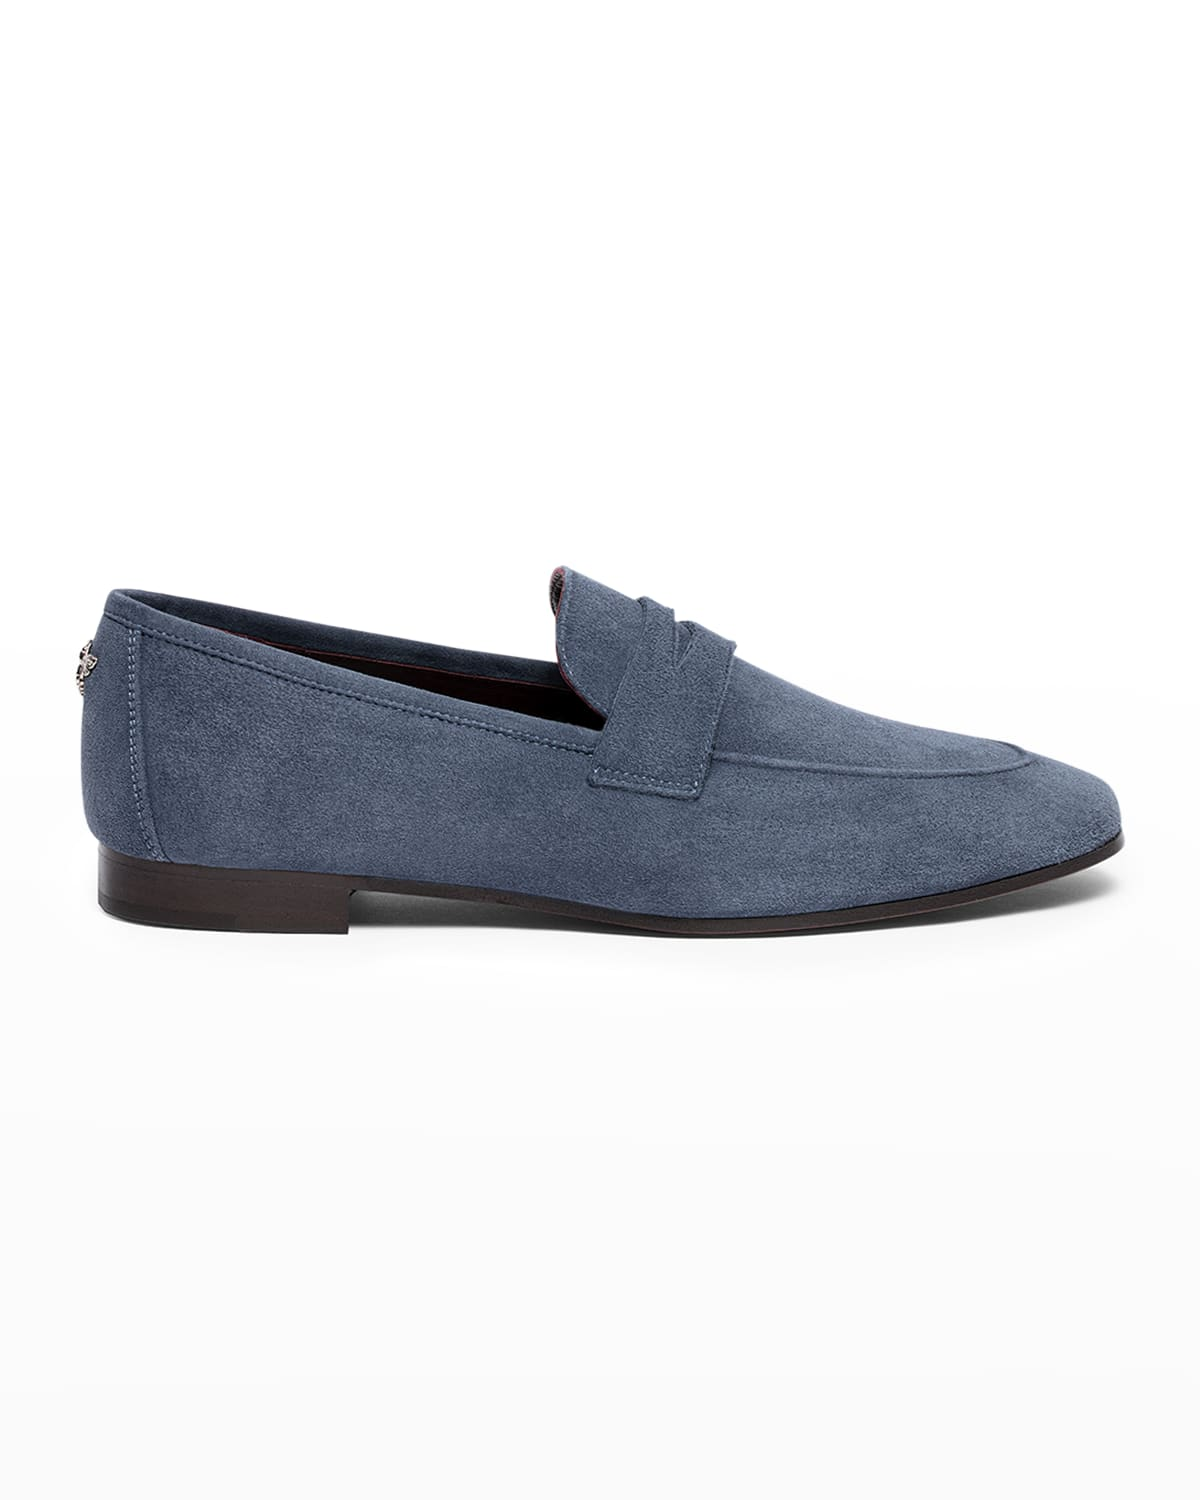 Bee Stud Suede Penny Loafers